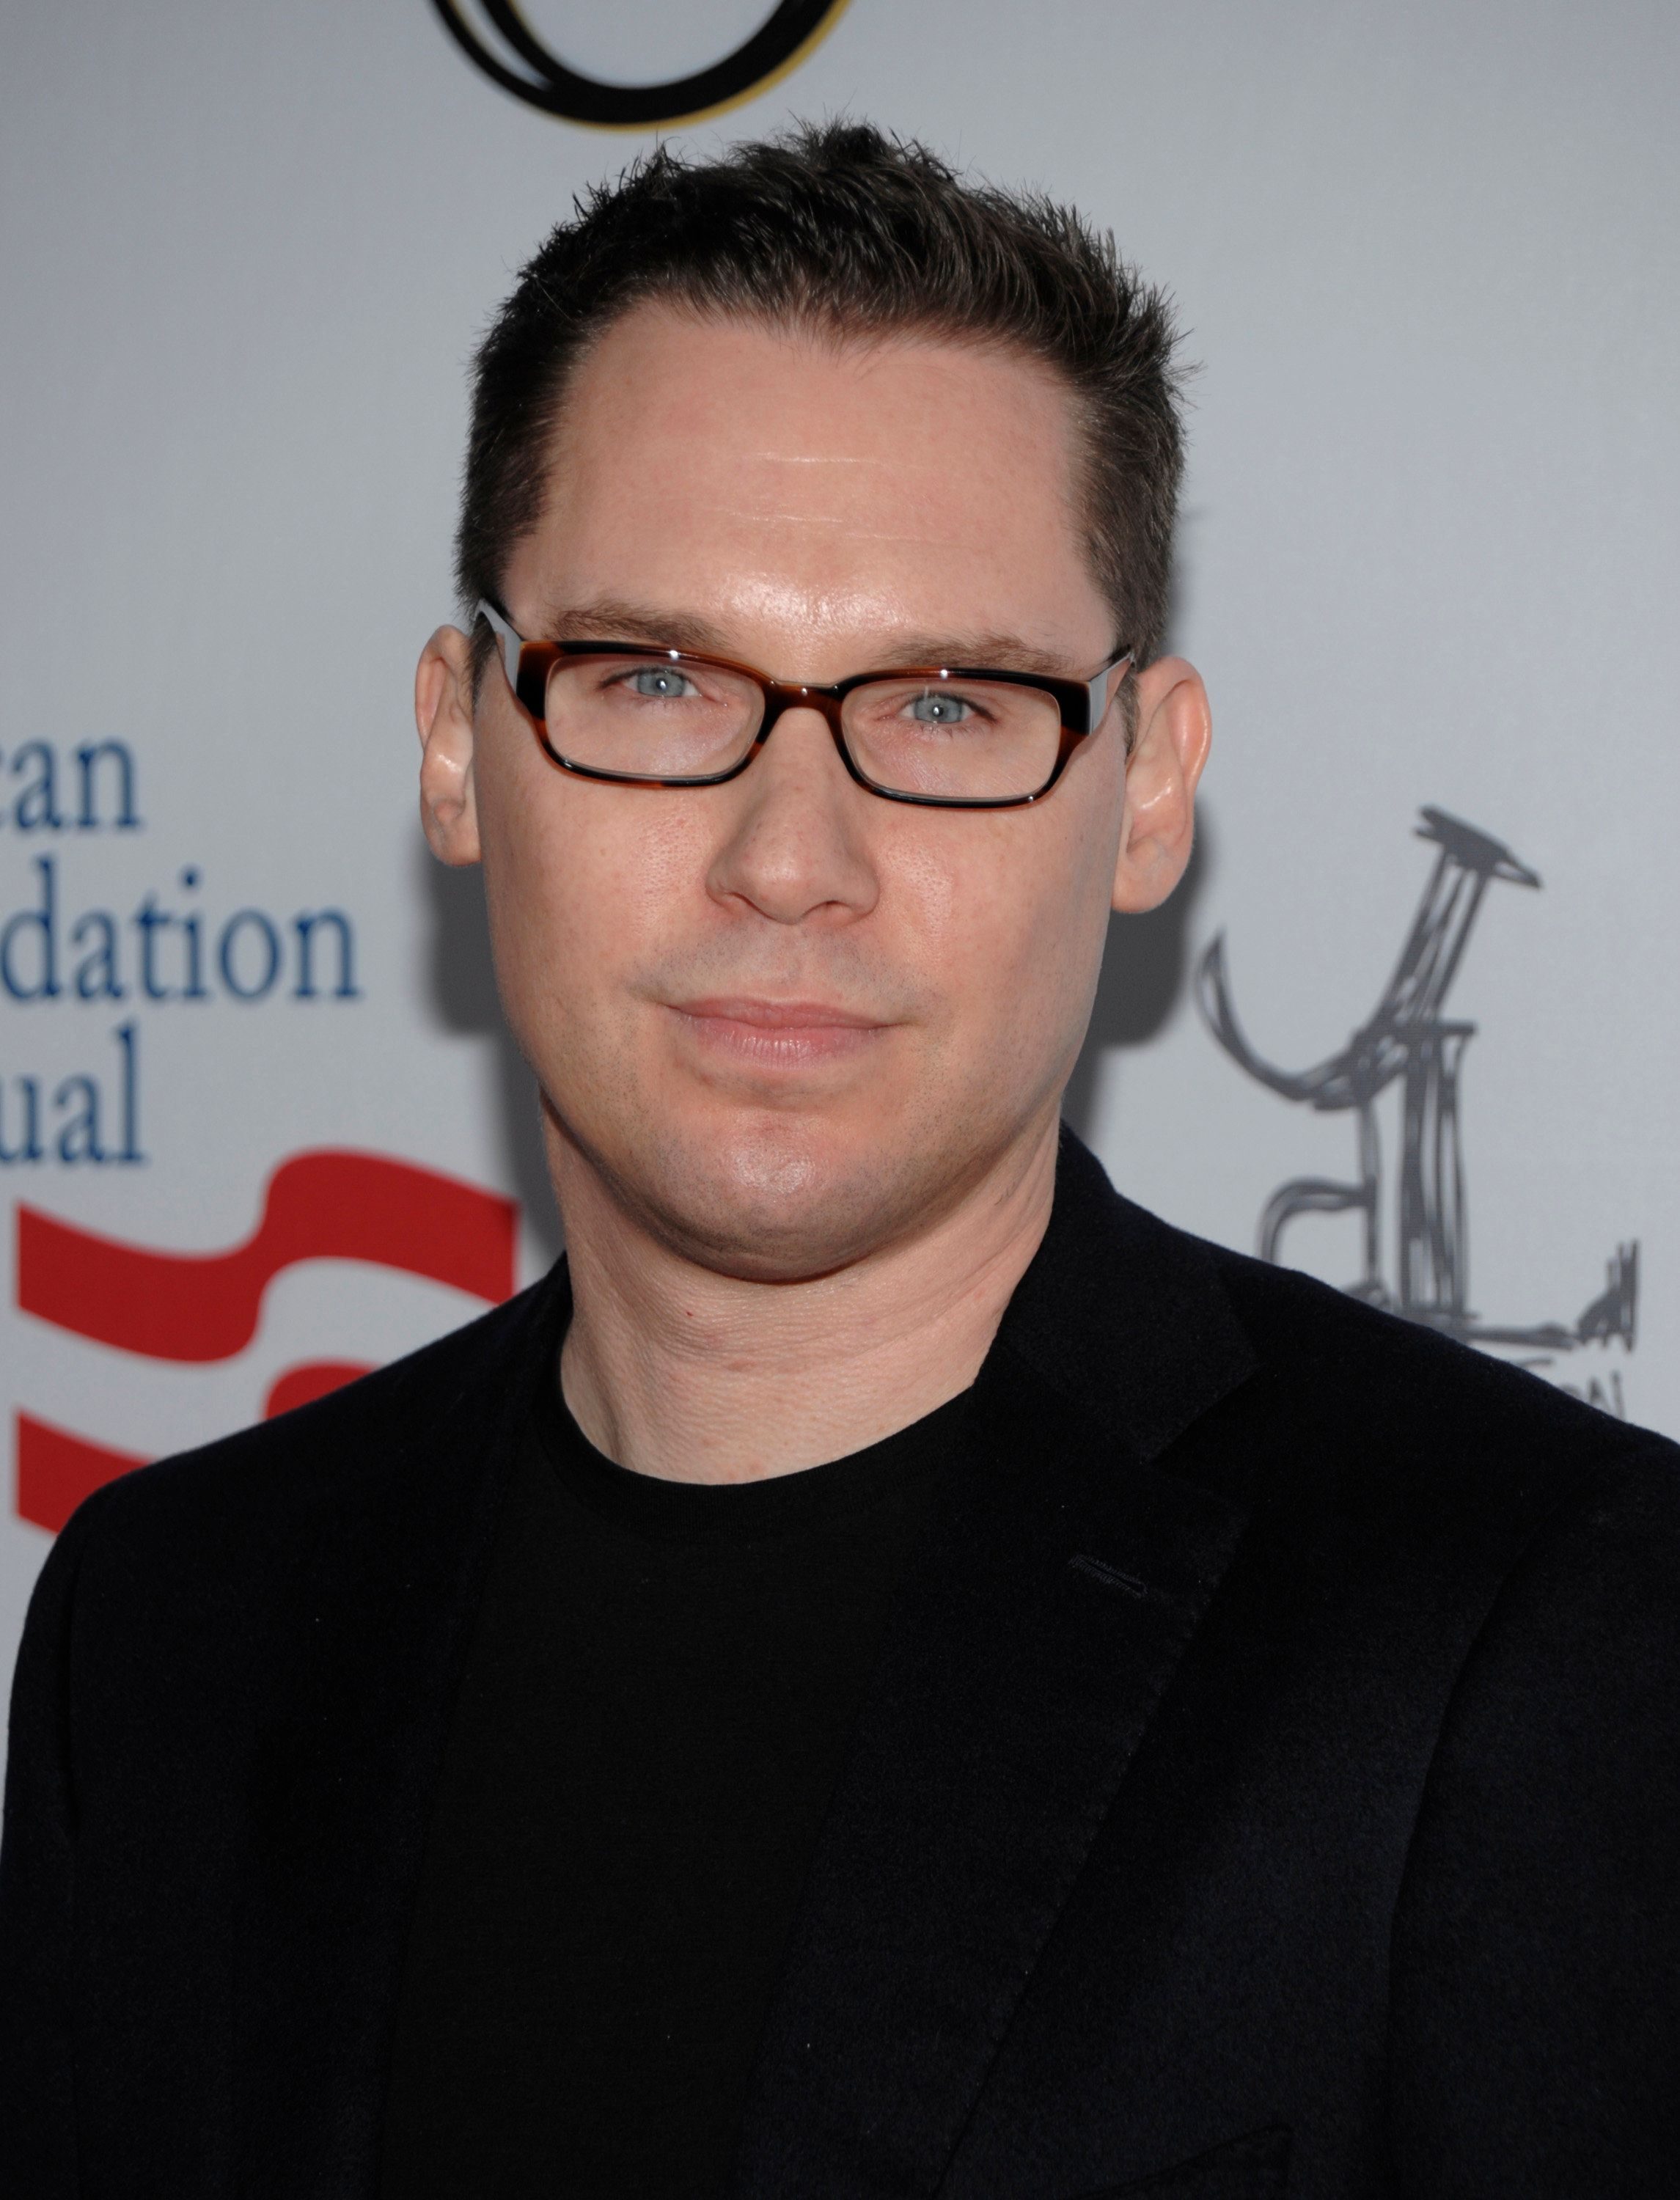 BAFTA has suspended Bryan Singer's nomination until sexual assault allegations against him have been resolved.